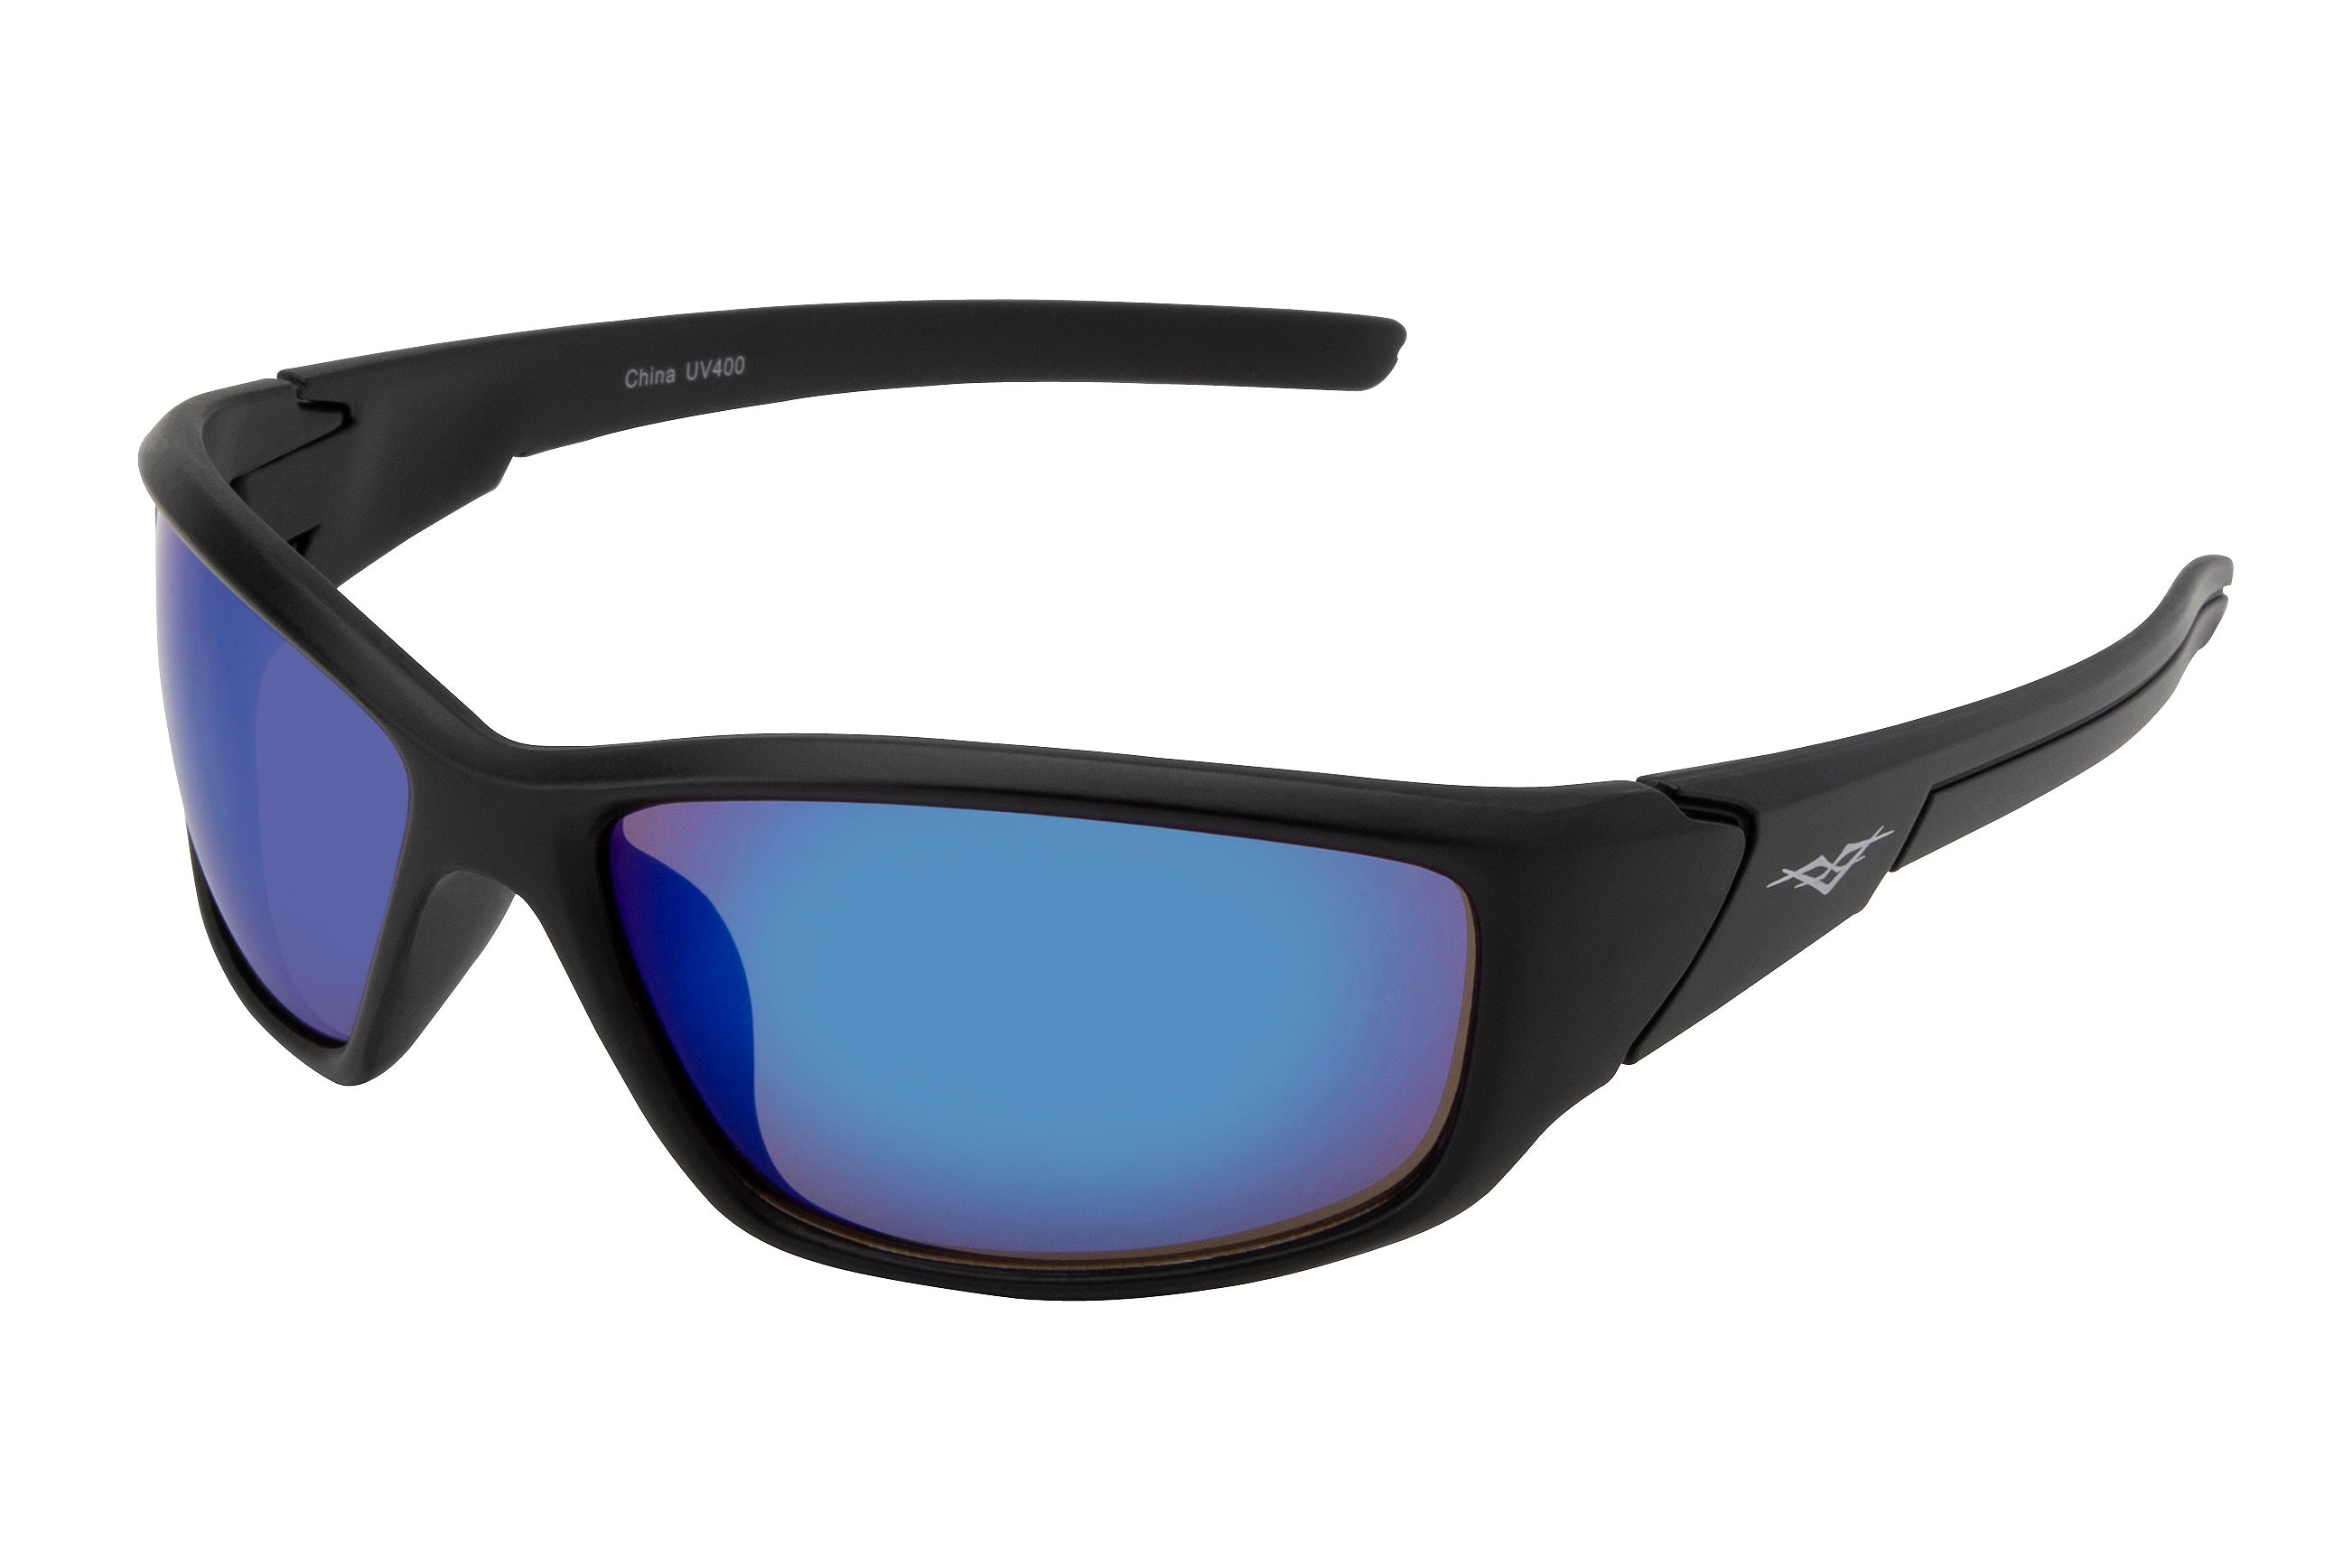 55052 - VertX PC Sports Wrap Sunglasses